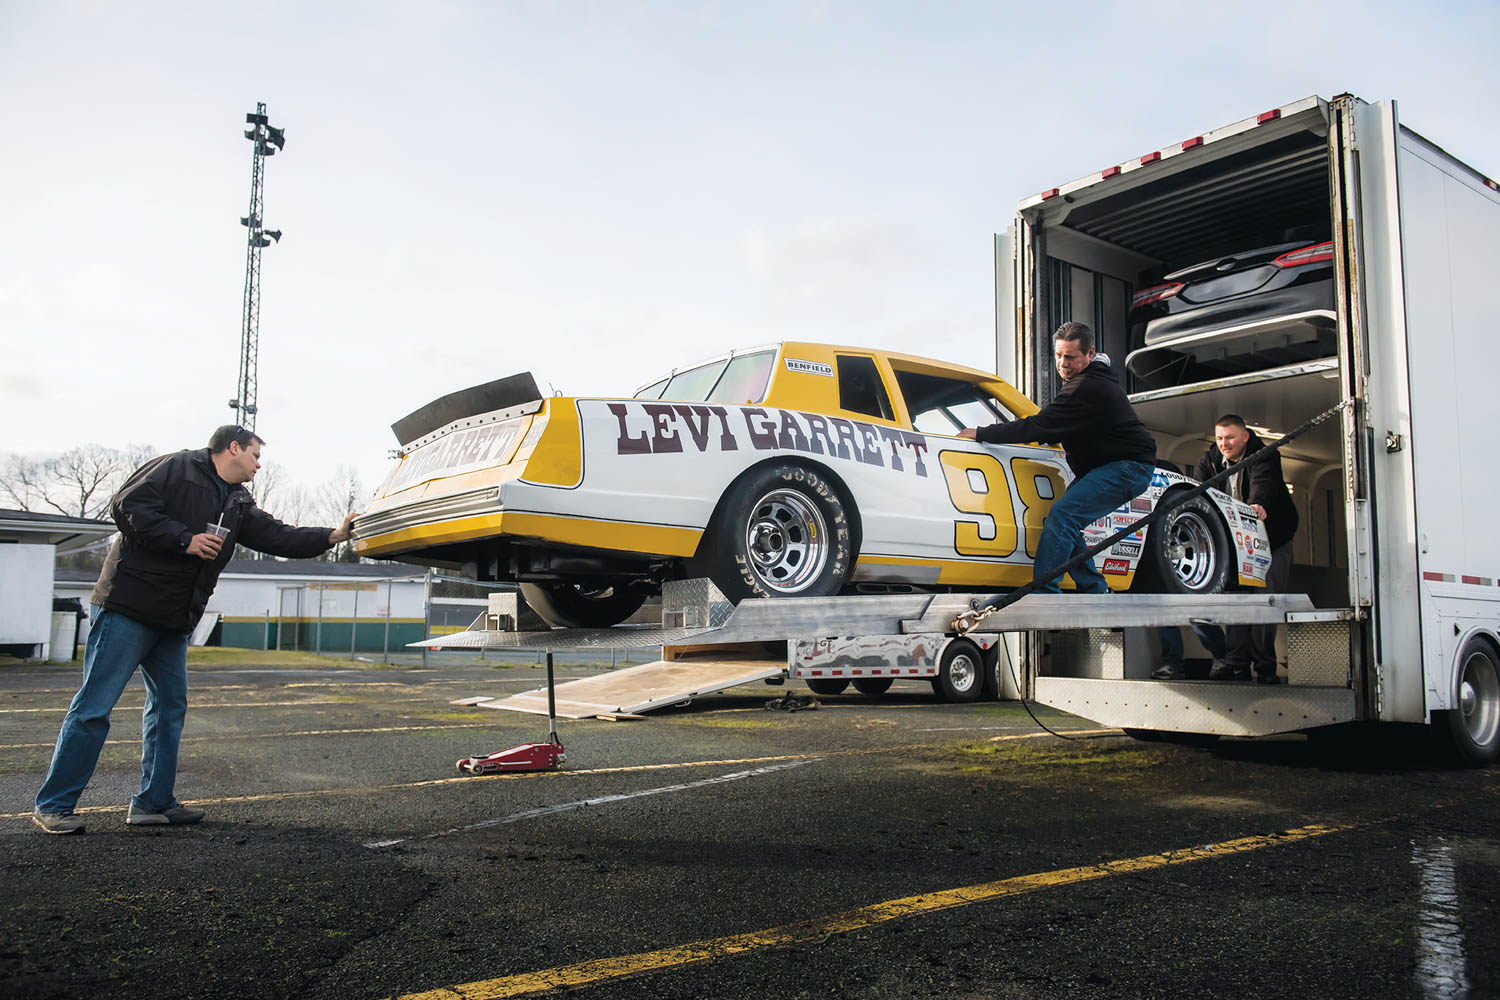 Bill Rhine has restored more than 100 vintage NASCAR racers, including his '84 Monte Carlo. He can tell you from sight if an oil tank is off a 2012 or '13 Hendrick car.